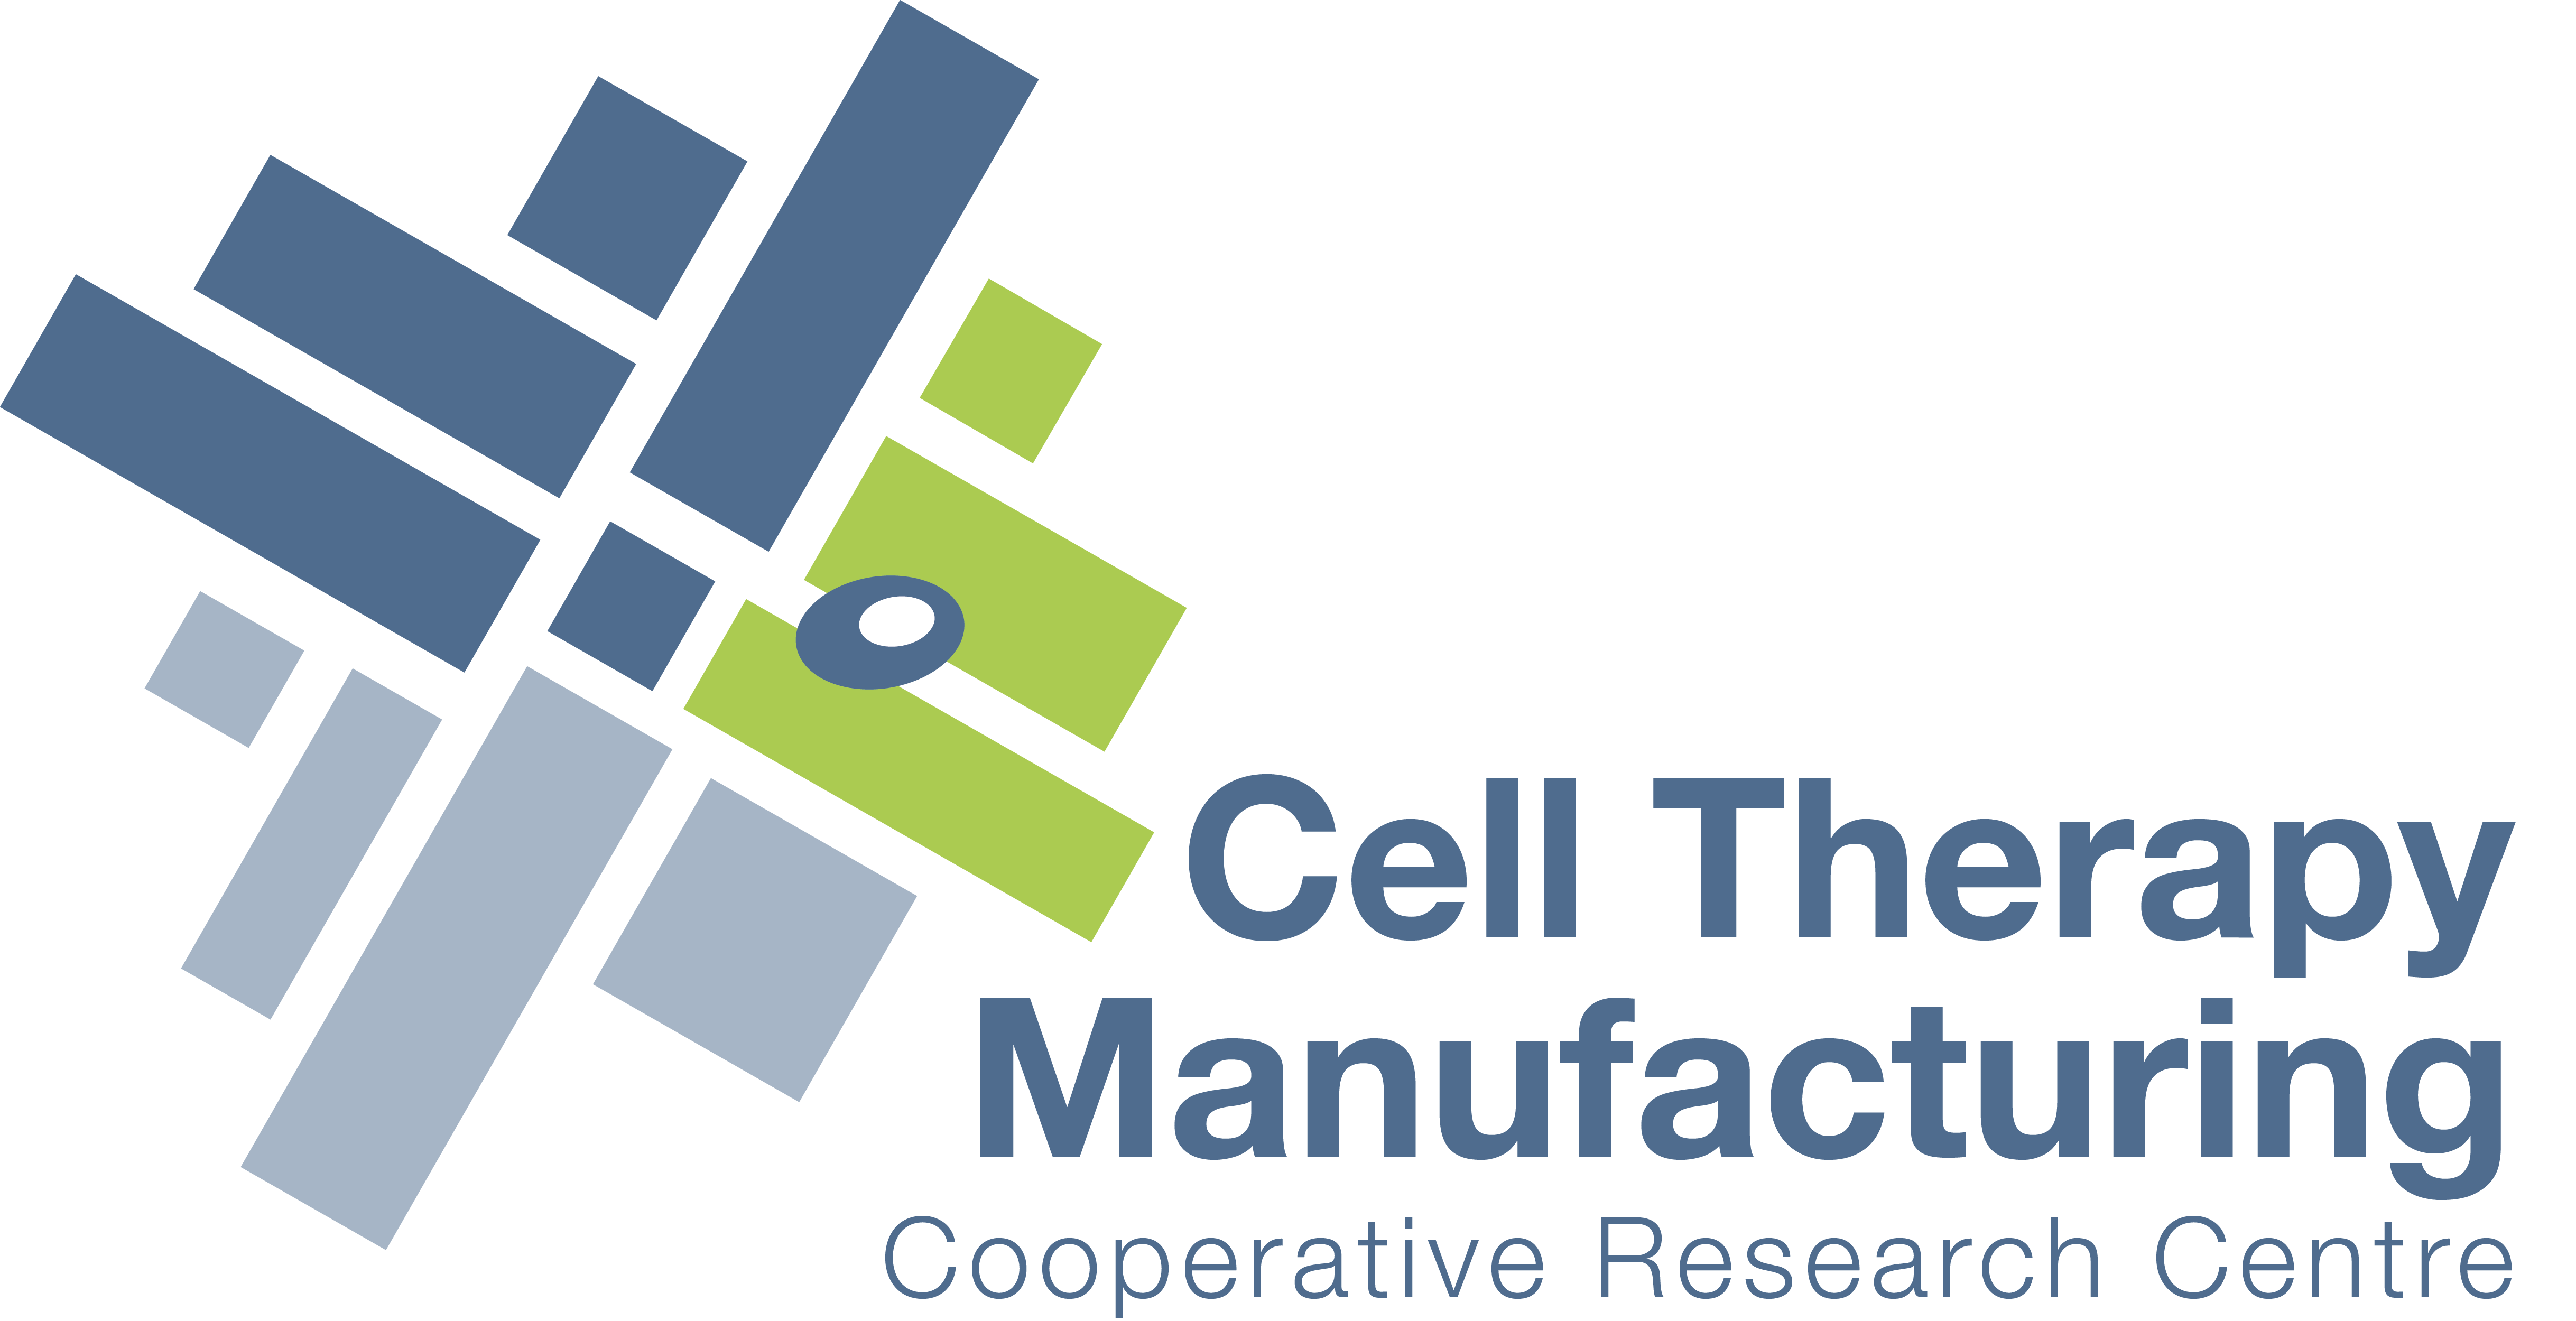 CRC for Cell Therapy Manufacturing  logo